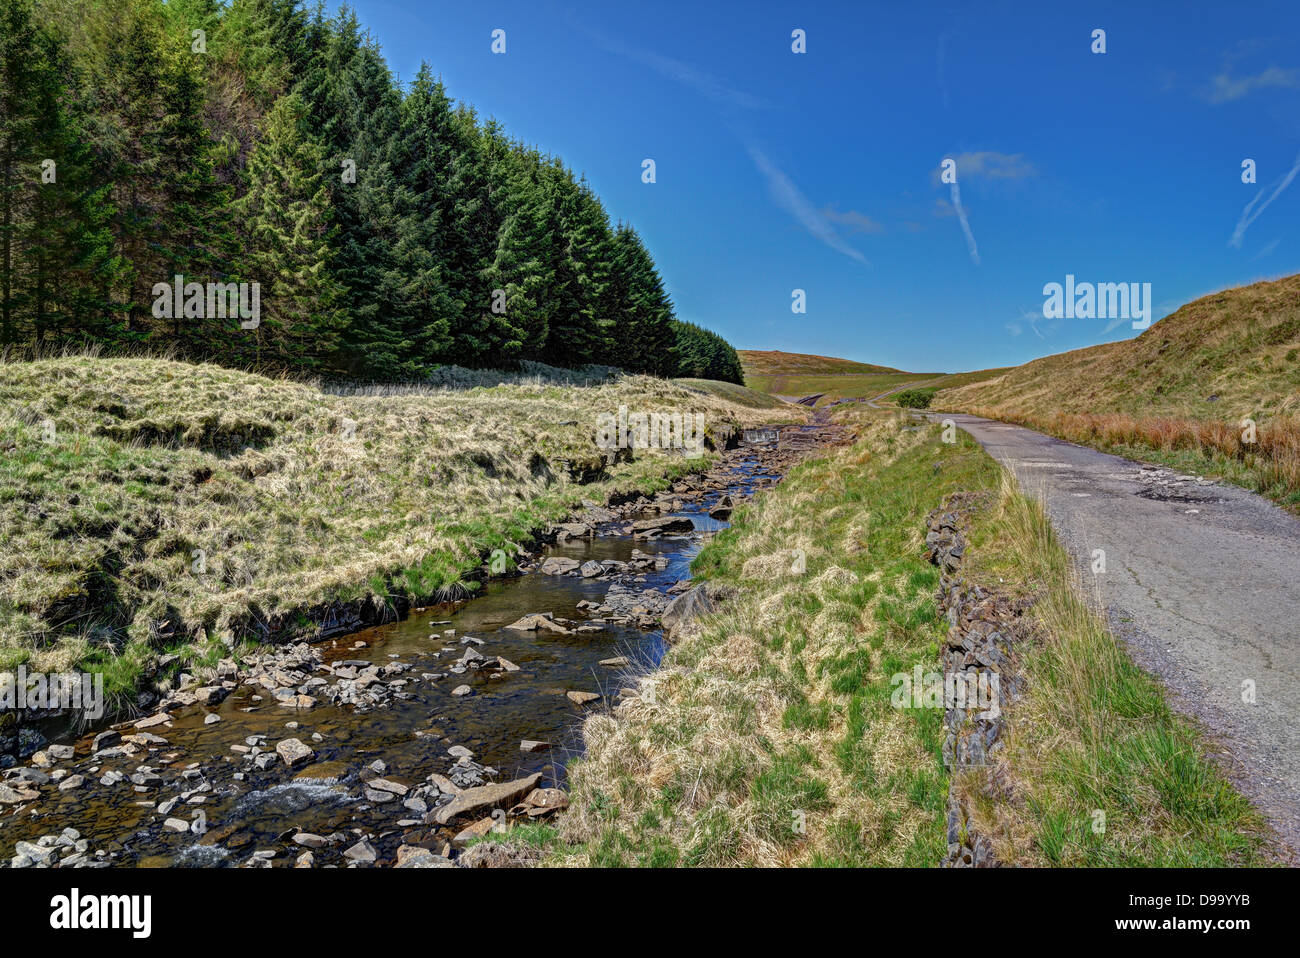 Stream running alongside a tarmac path and conifer forest - Stock Image